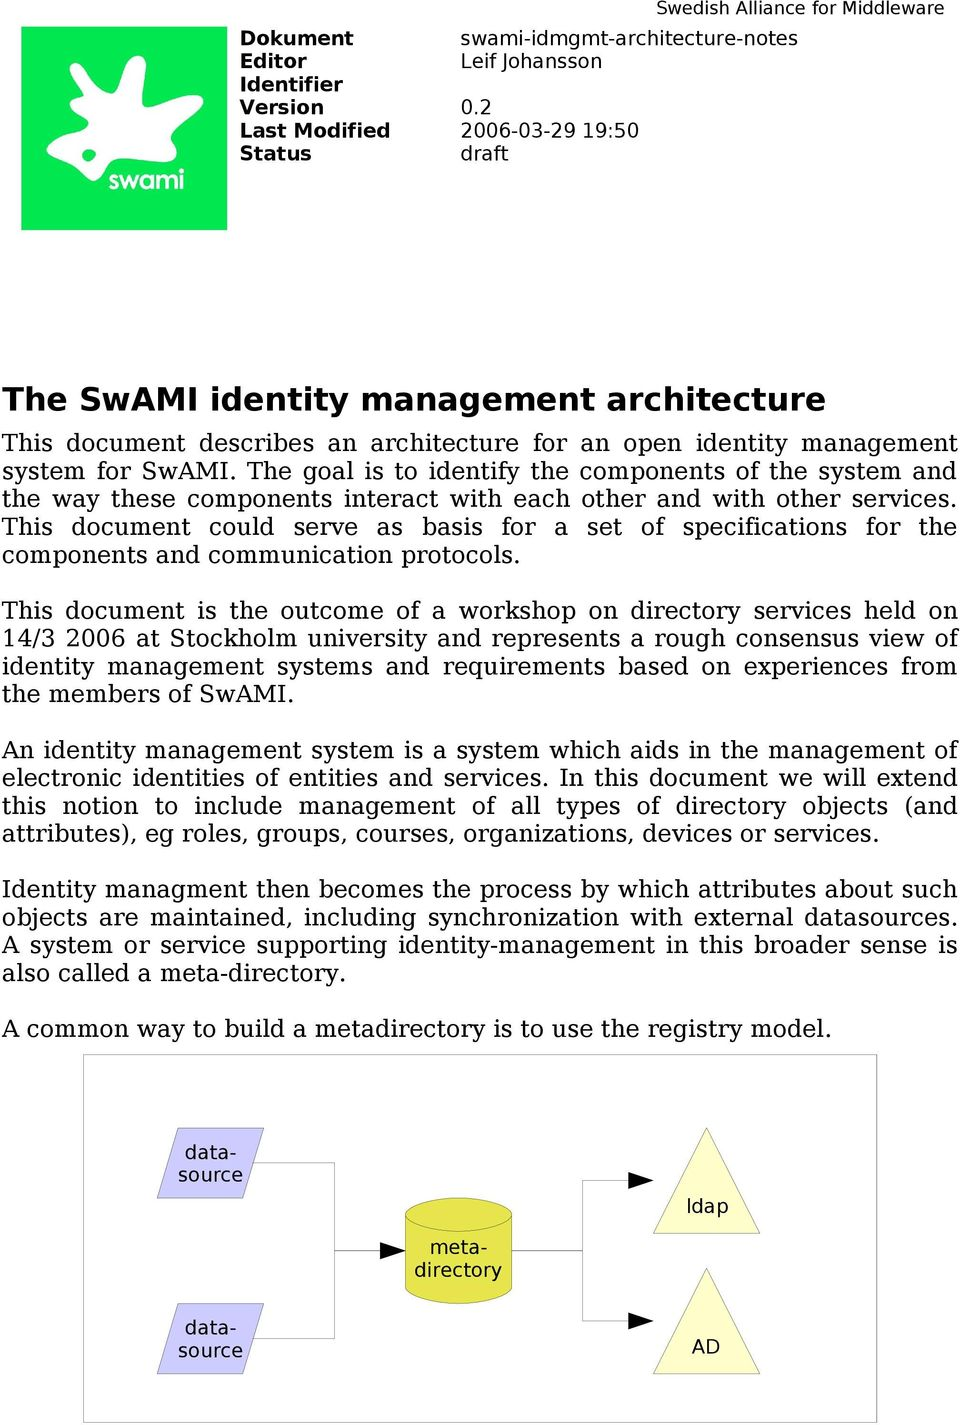 architecture for an open identity management system for SwAMI. The goal is to identify the components of the system and the way these components interact with each other and with other services.